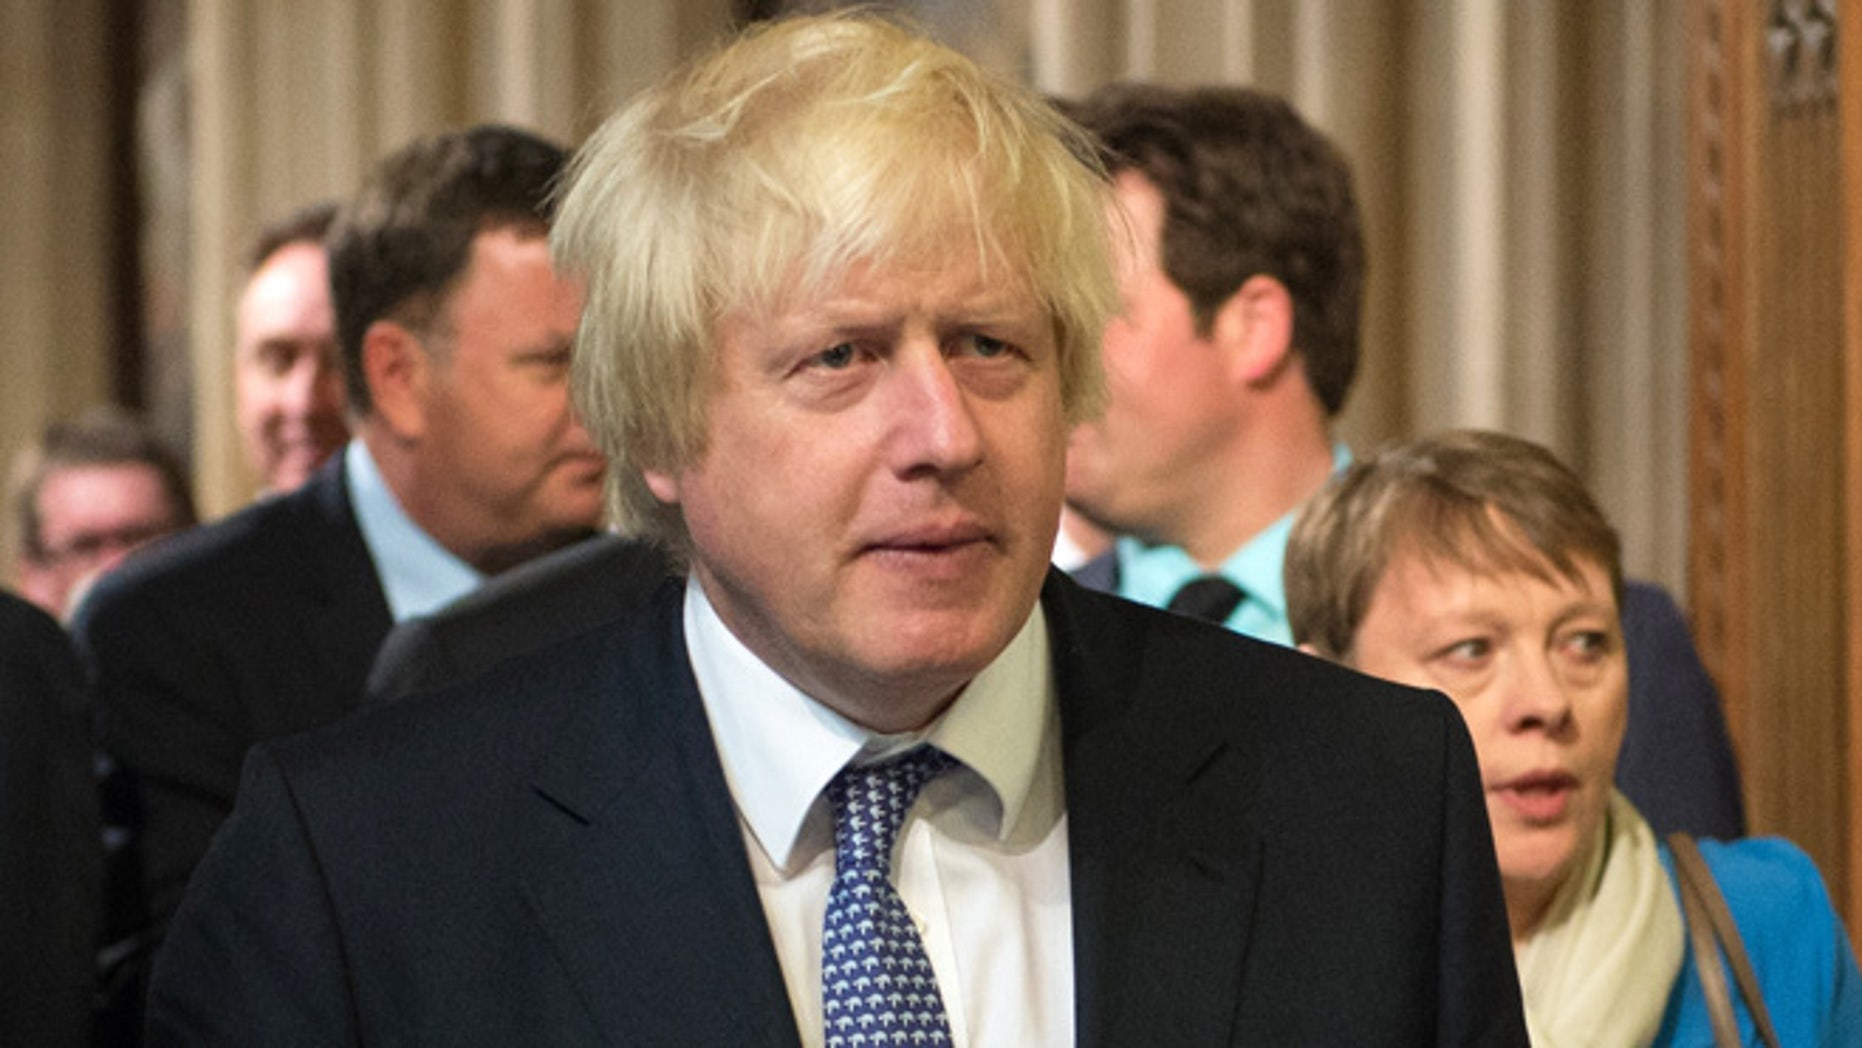 May 27, 2015: The Mayor of London and Conservative Party MP Boris Johnson arrives in the House of Commons chamber following the State Opening of Parliament at the Palace of Westminster in London, Britain.